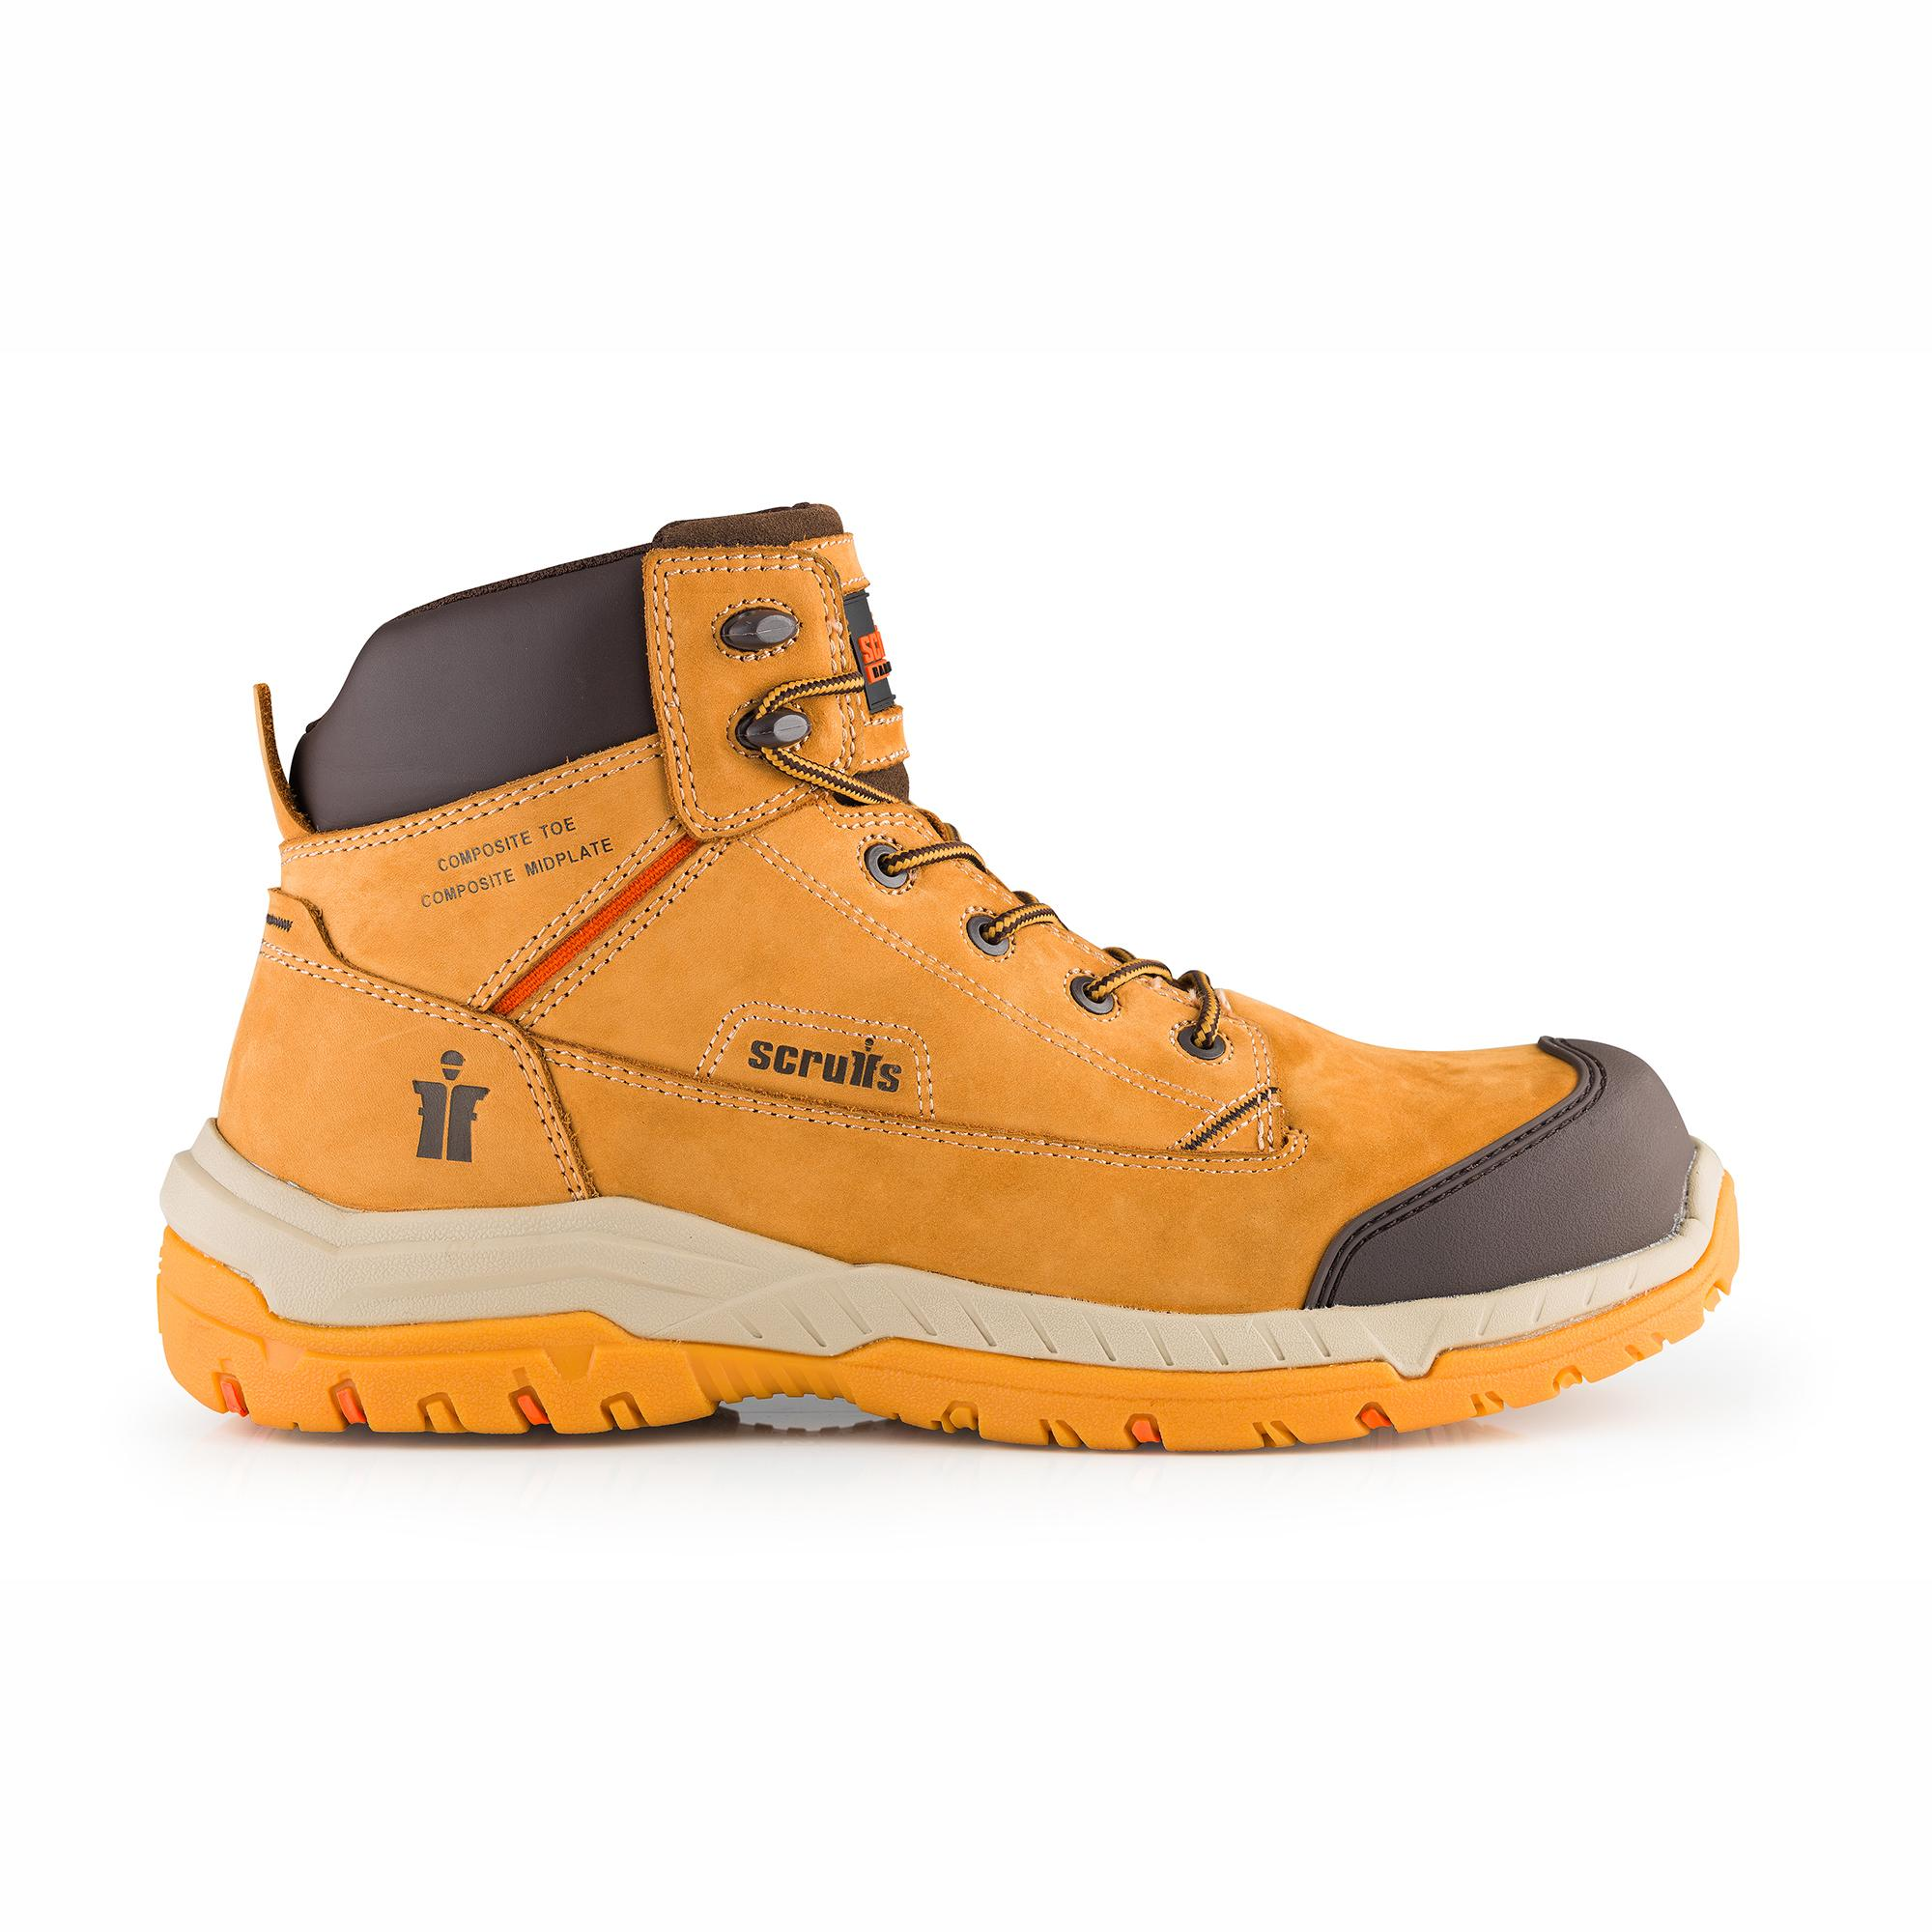 Scruffs Solleret Safety Boots